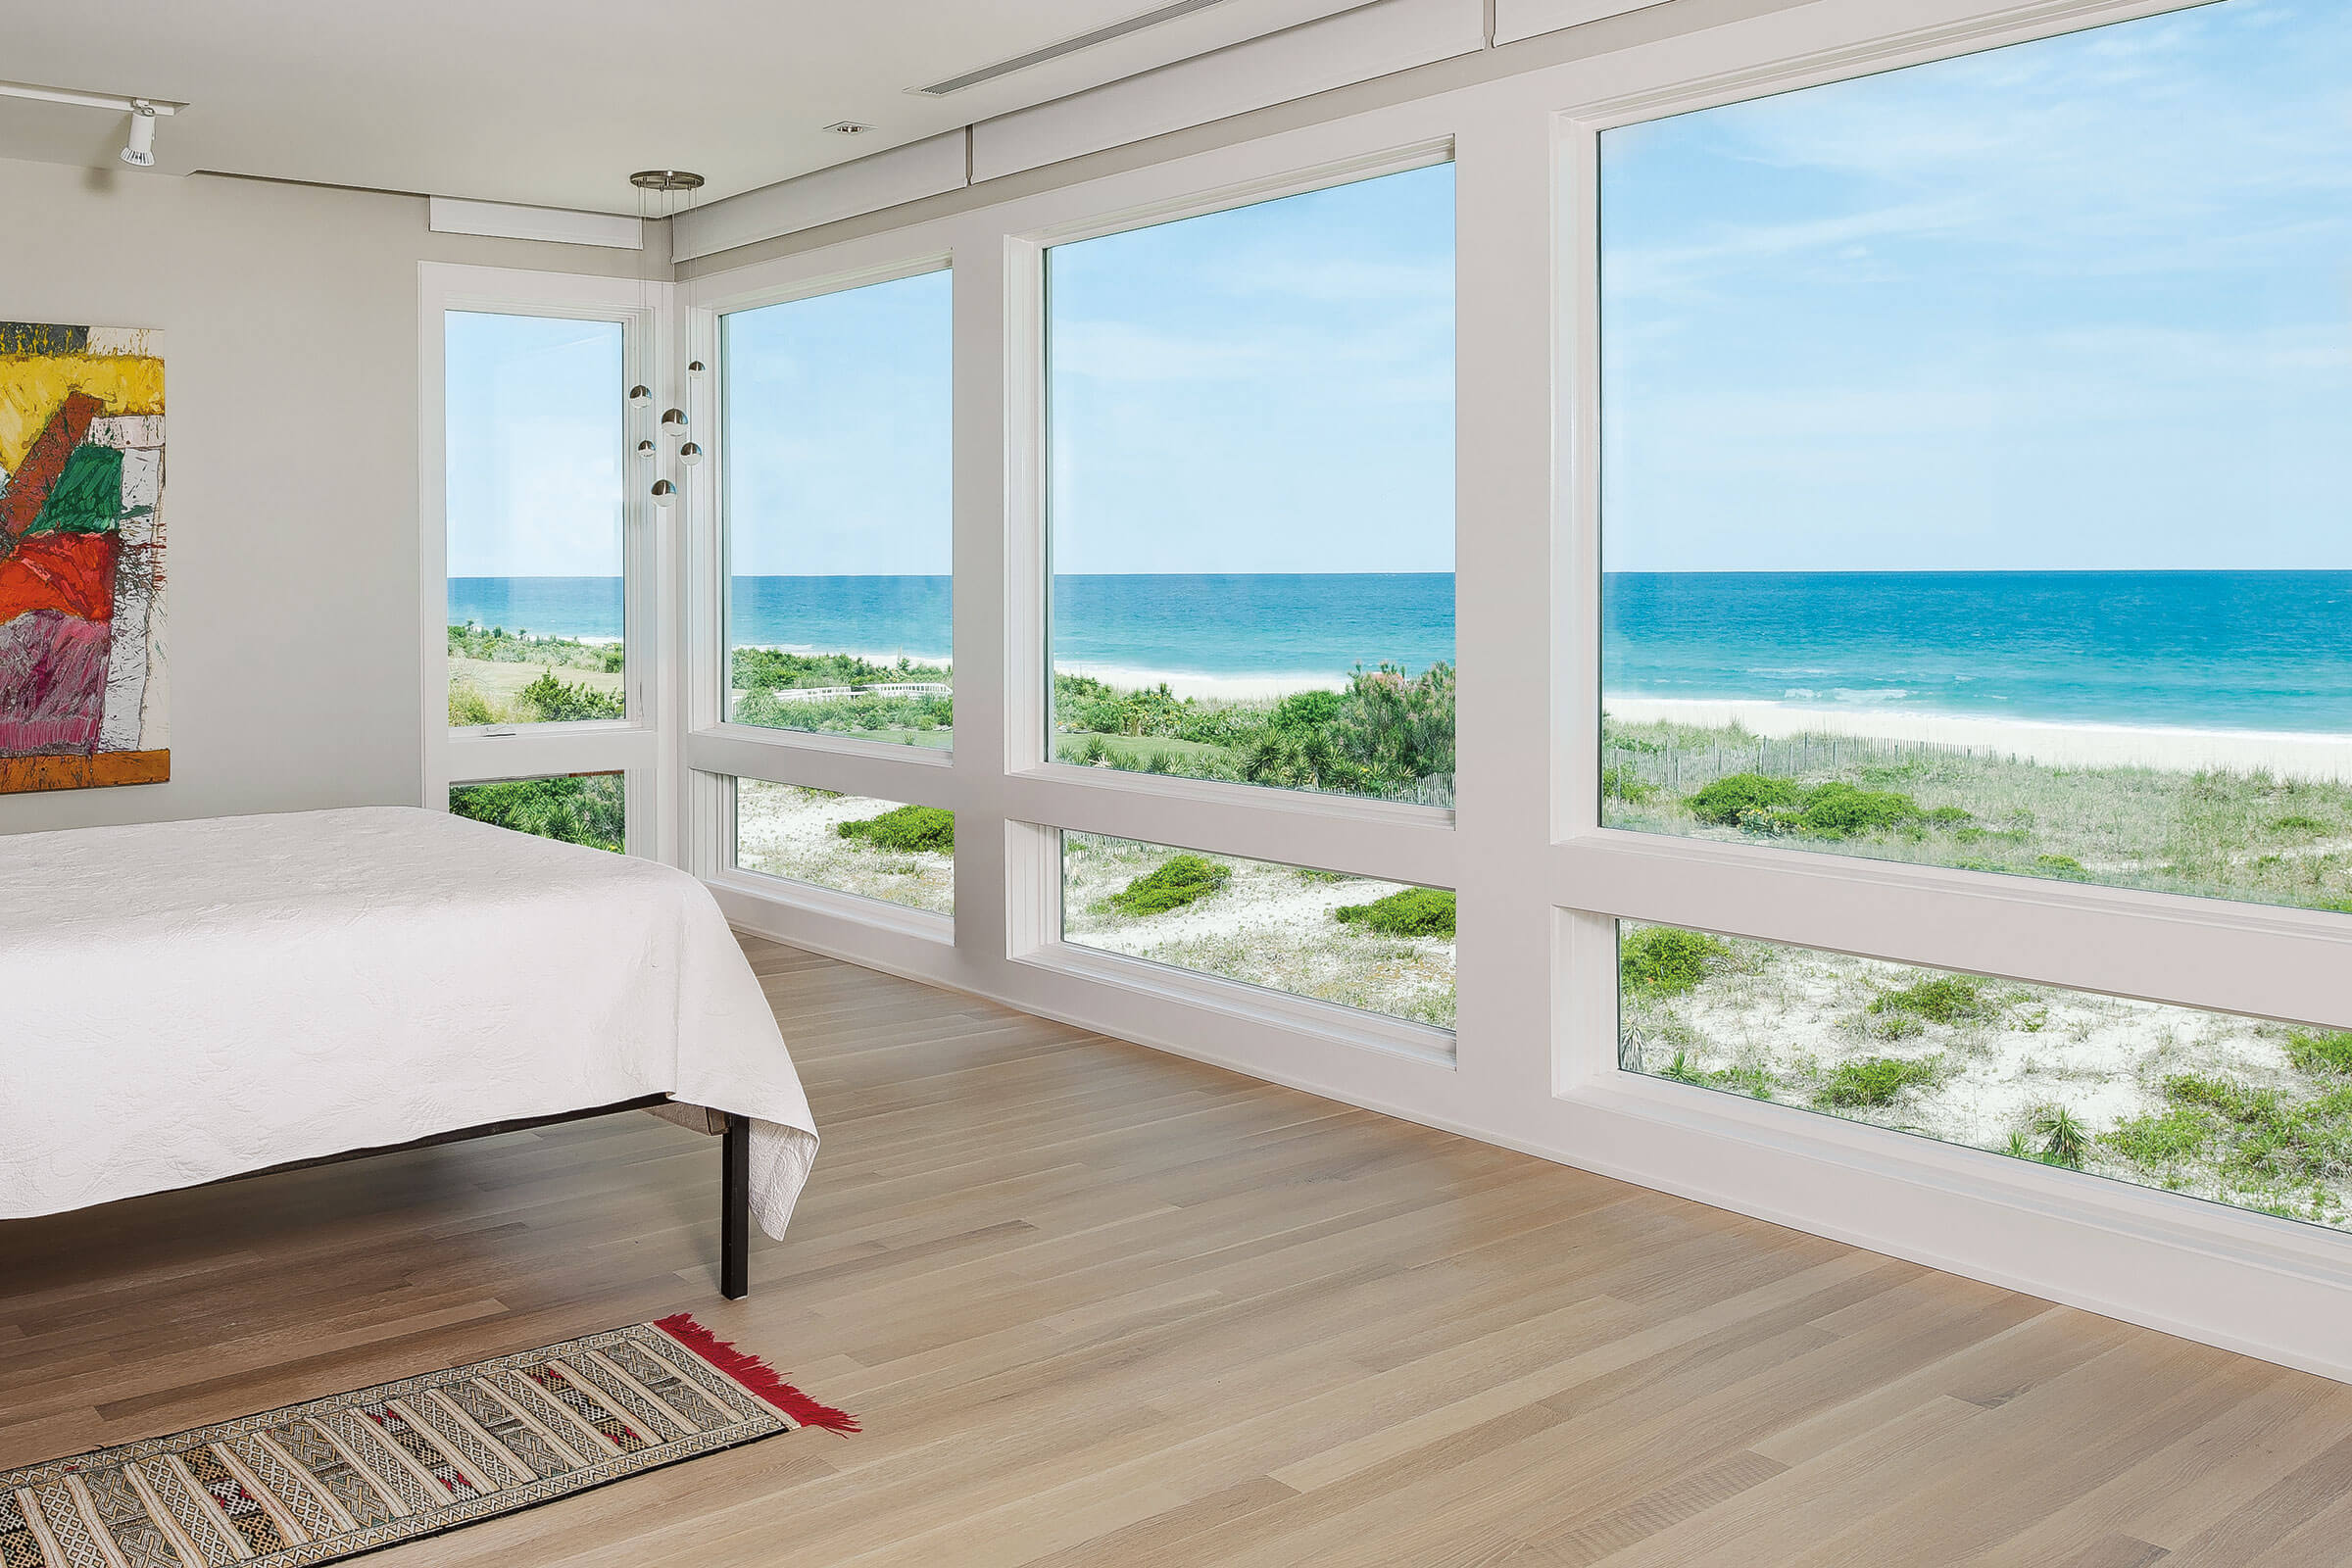 Bedroom With Beautiful Beach View Through Marvin Elevate Picture Windows